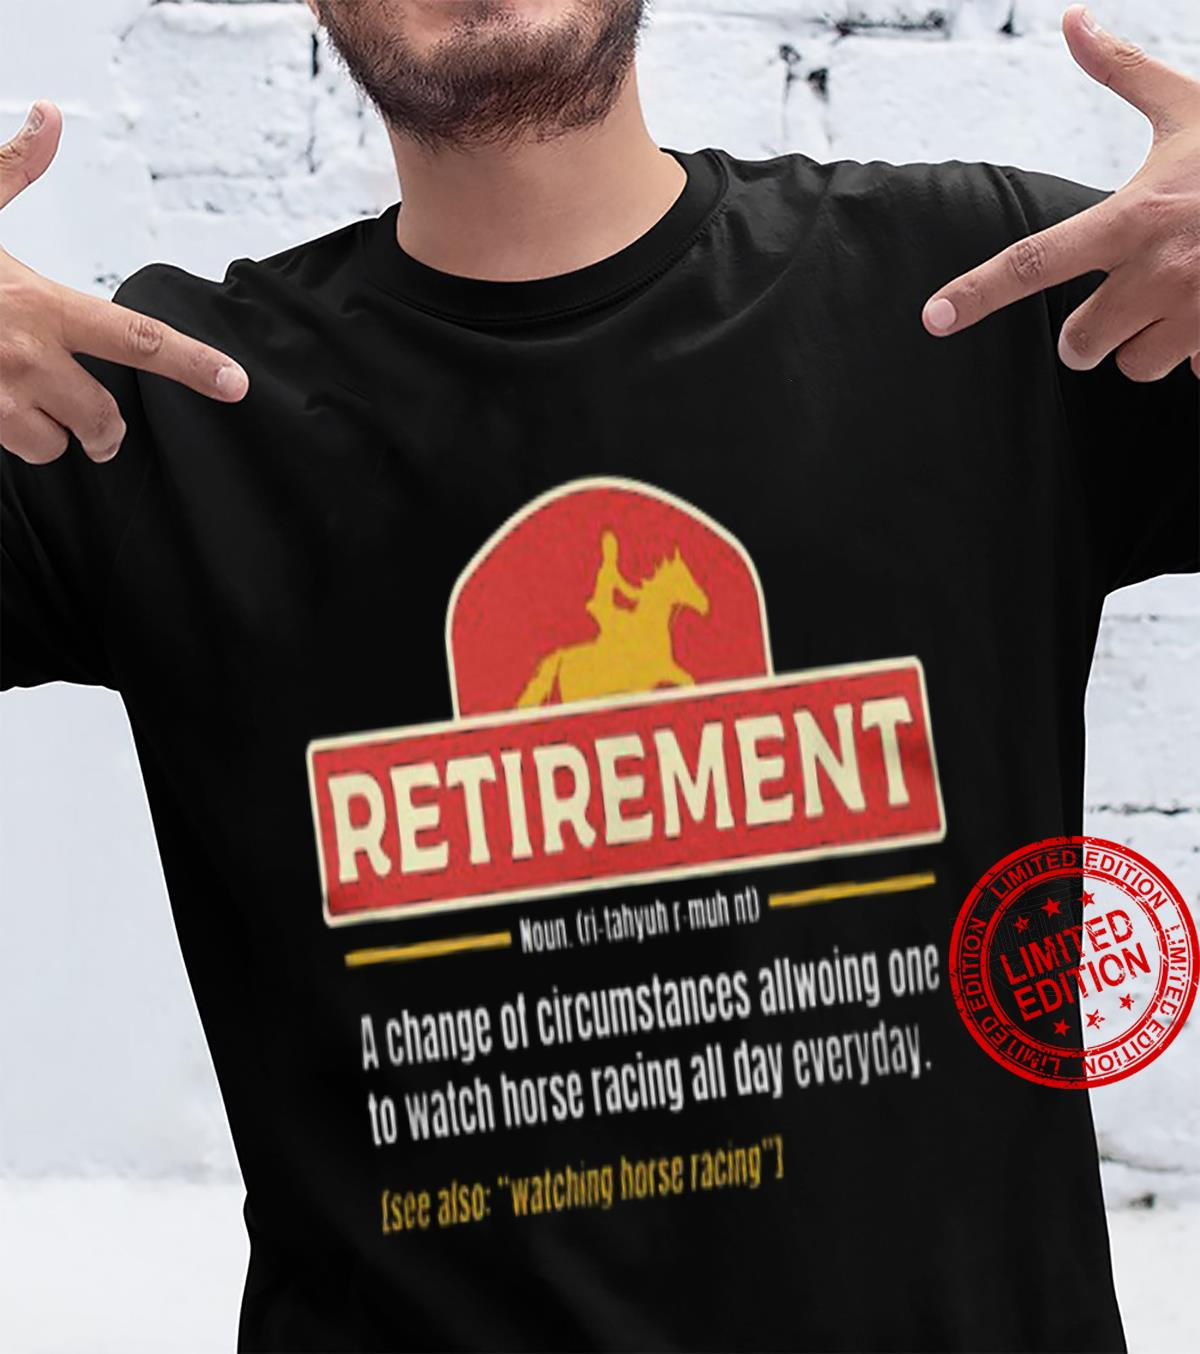 Retirement A Change Of Circumstances Allowing One To Watch Horse Racing All Day Everyday Shirt unisex